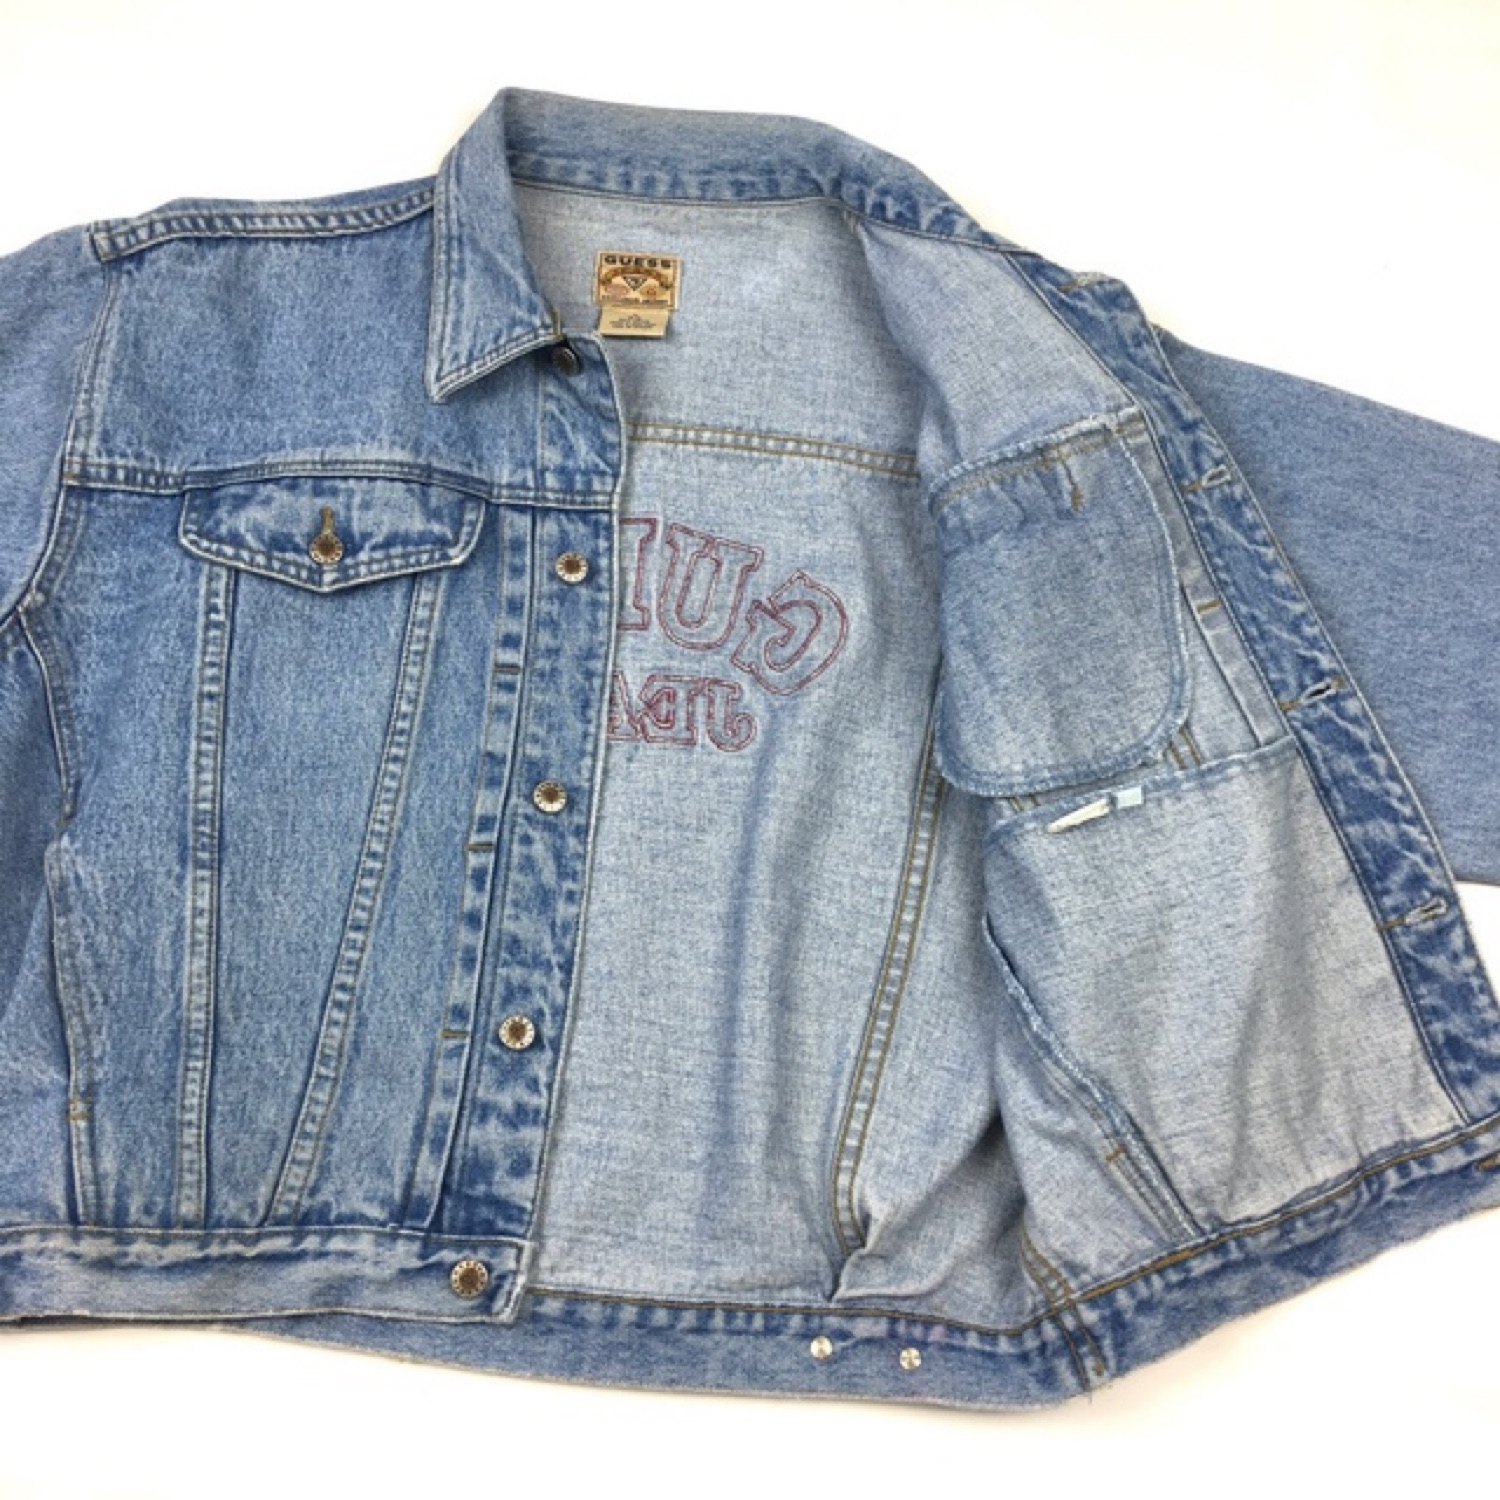 reputable site e8af5 bb477 Guess Jeans Denim Jacket